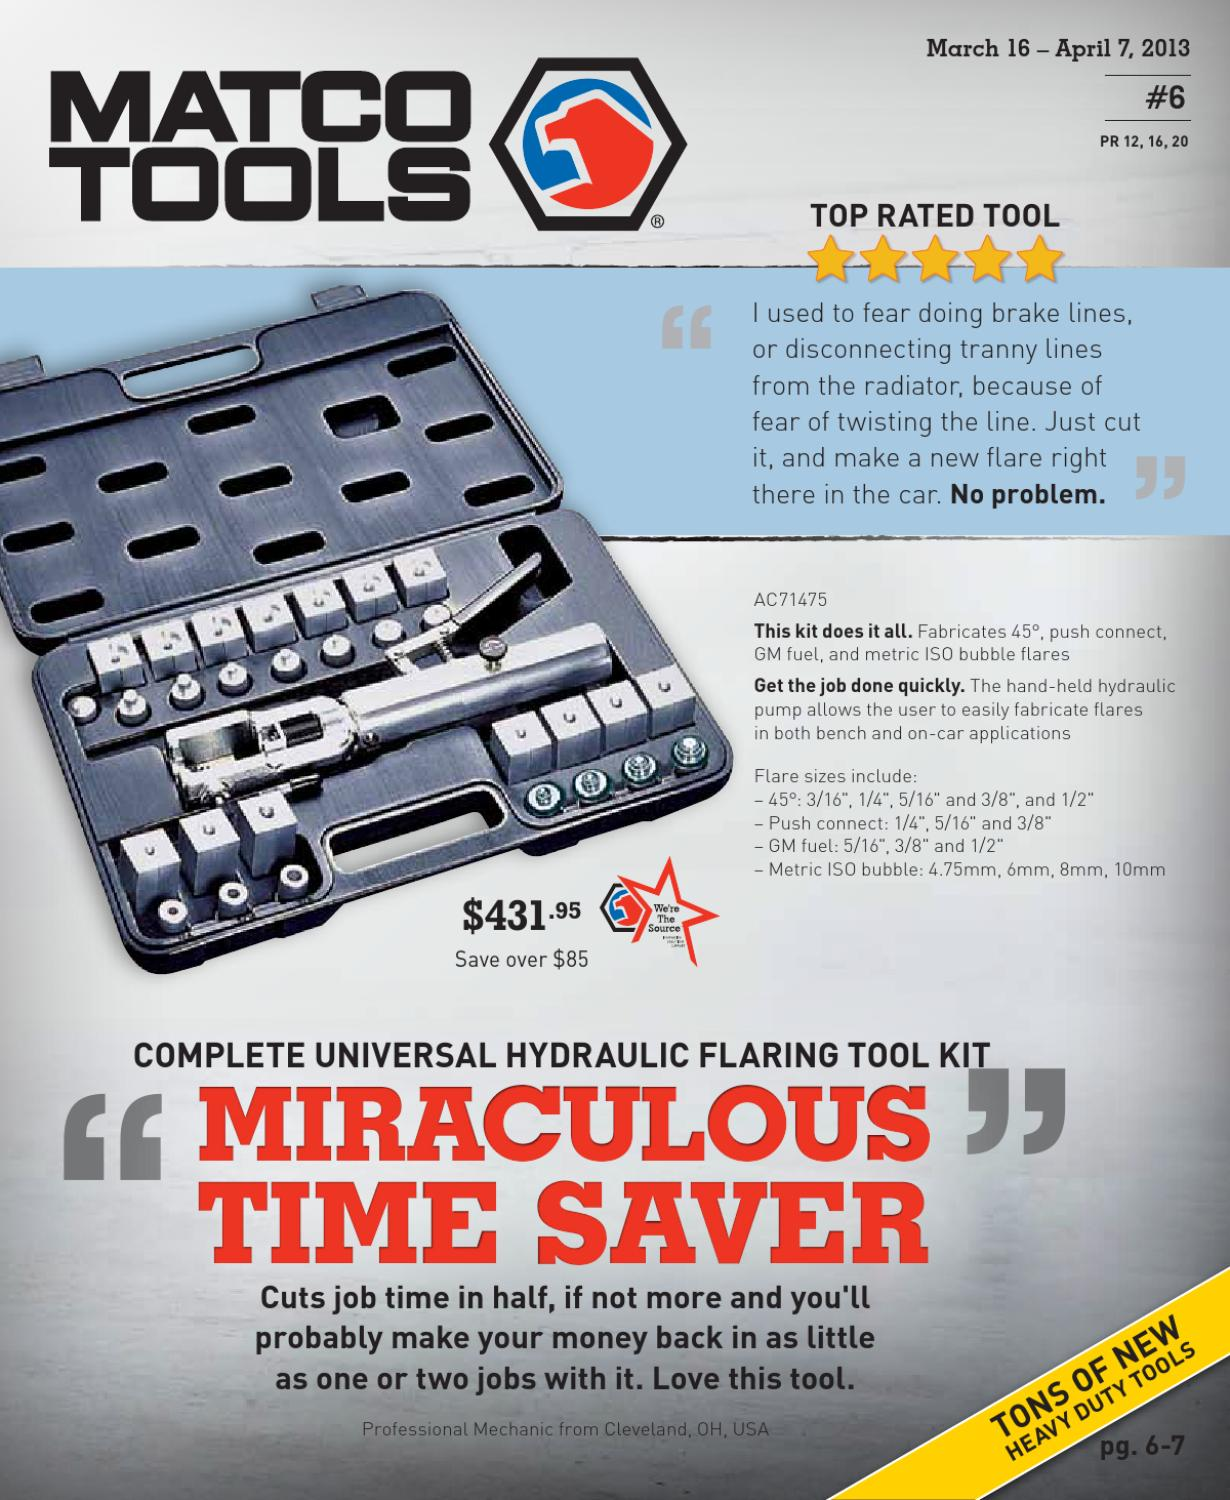 Matco Tools Sales Flyer #6 By Bill Amereihn